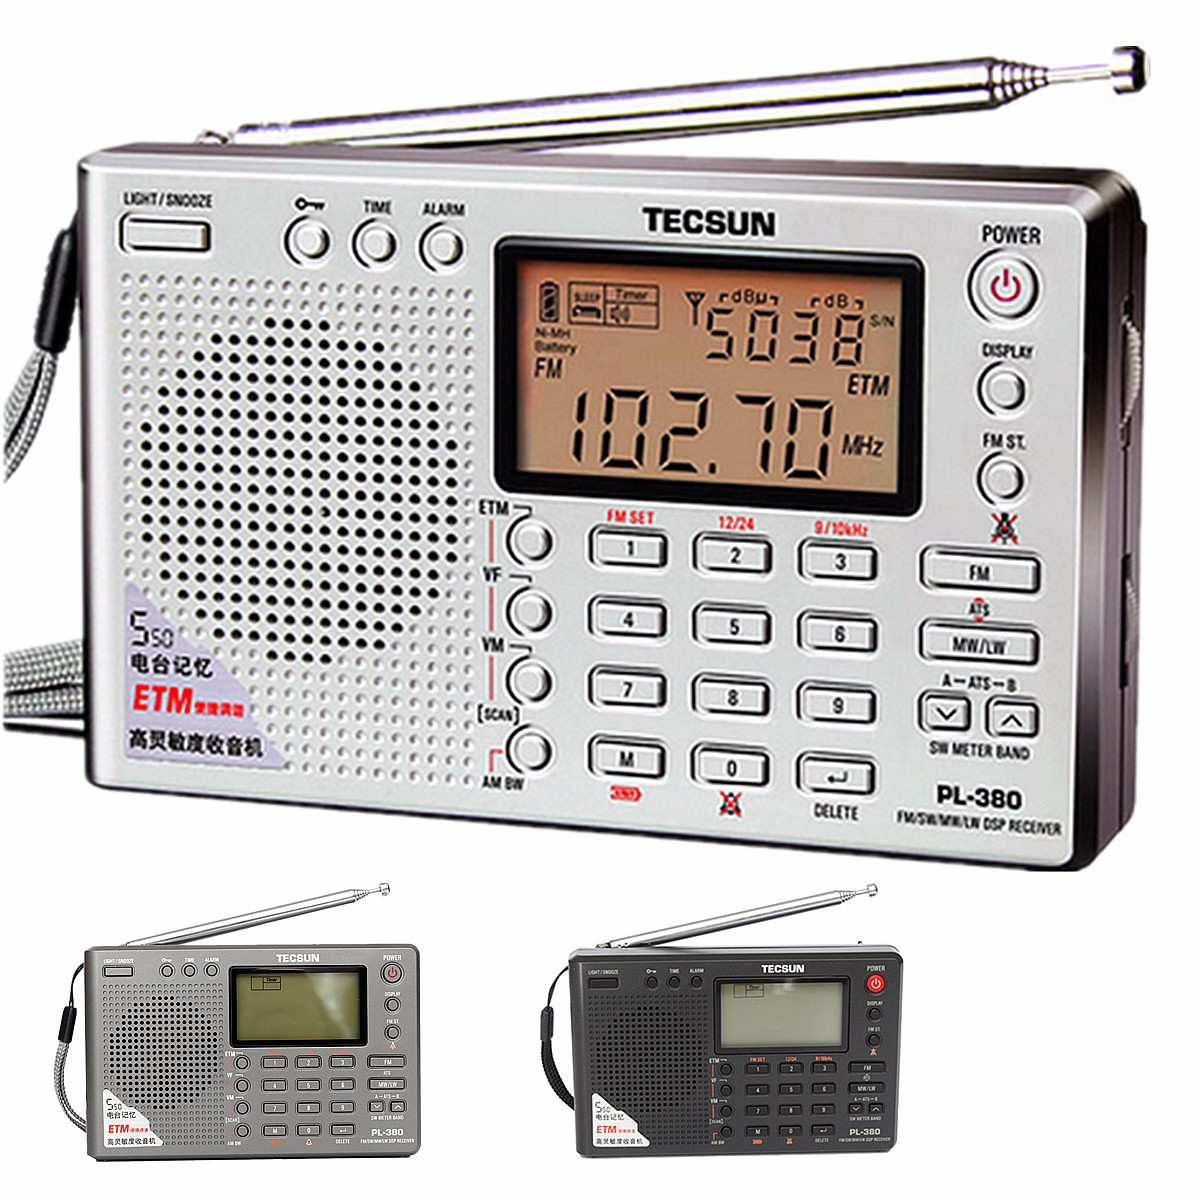 TECSUN PL-380 DSP PLL FM MW SW LW Digital Stereo Radio World-Band Receiver New 7 Tuning Mode Selectable Silver Gray Black hot sale tecsun pl 600 pl600 portable fm radio fm stereo am fm sw mw pll all band receiver digital radio tecsun free shipping